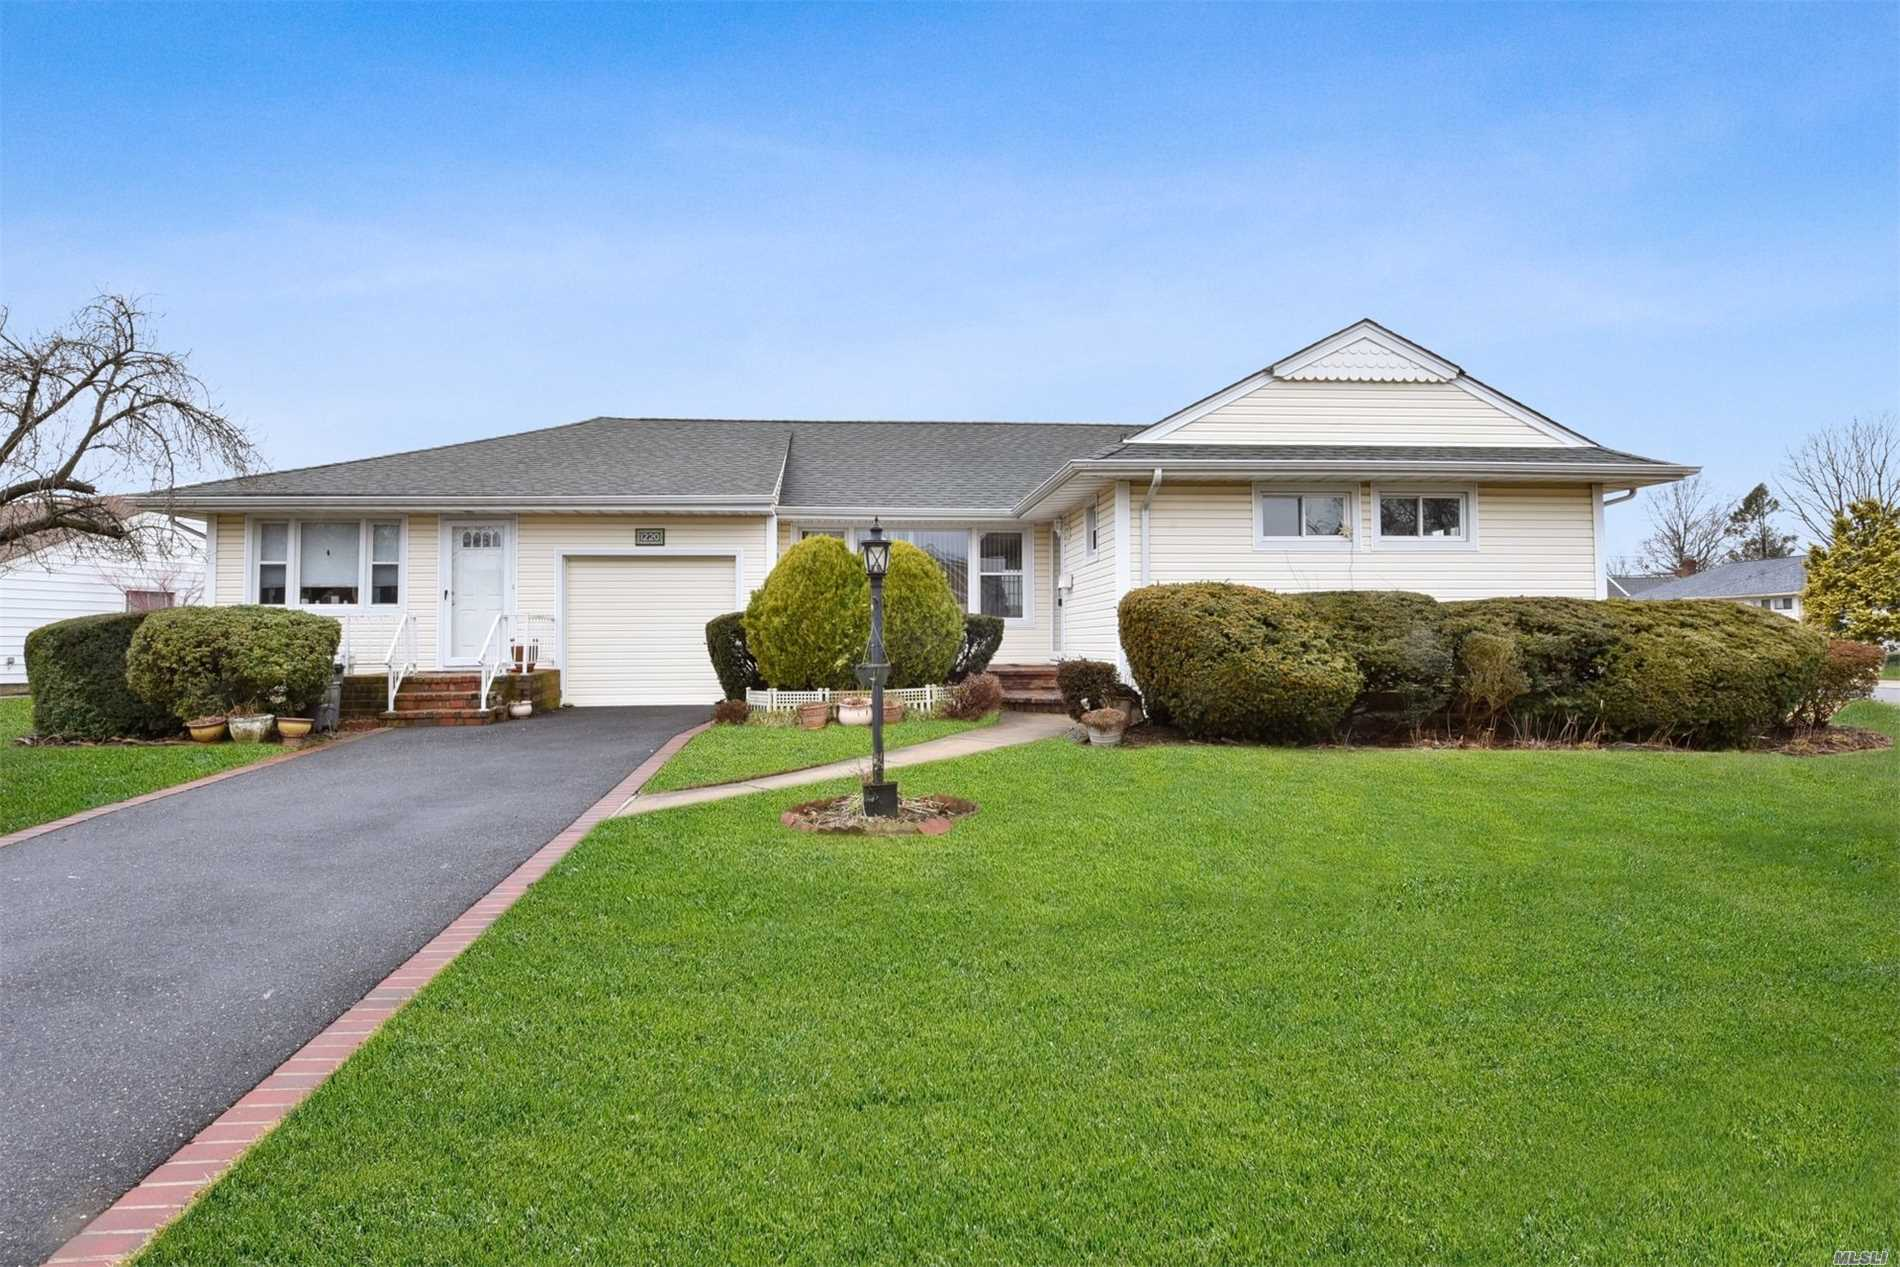 Corner Ranch With A Professional Office. Excellent Property For a Doctor, Attorney, Or Any Office Professional. Bright, Large 3 Bedroom And 2 Bath Ranch In Wantagh. Conveniently Located Near Shopping, Restaurants, LIRR, Bus And Schools. Low Taxes. Excellent Condition. Schedule A Showing Today!